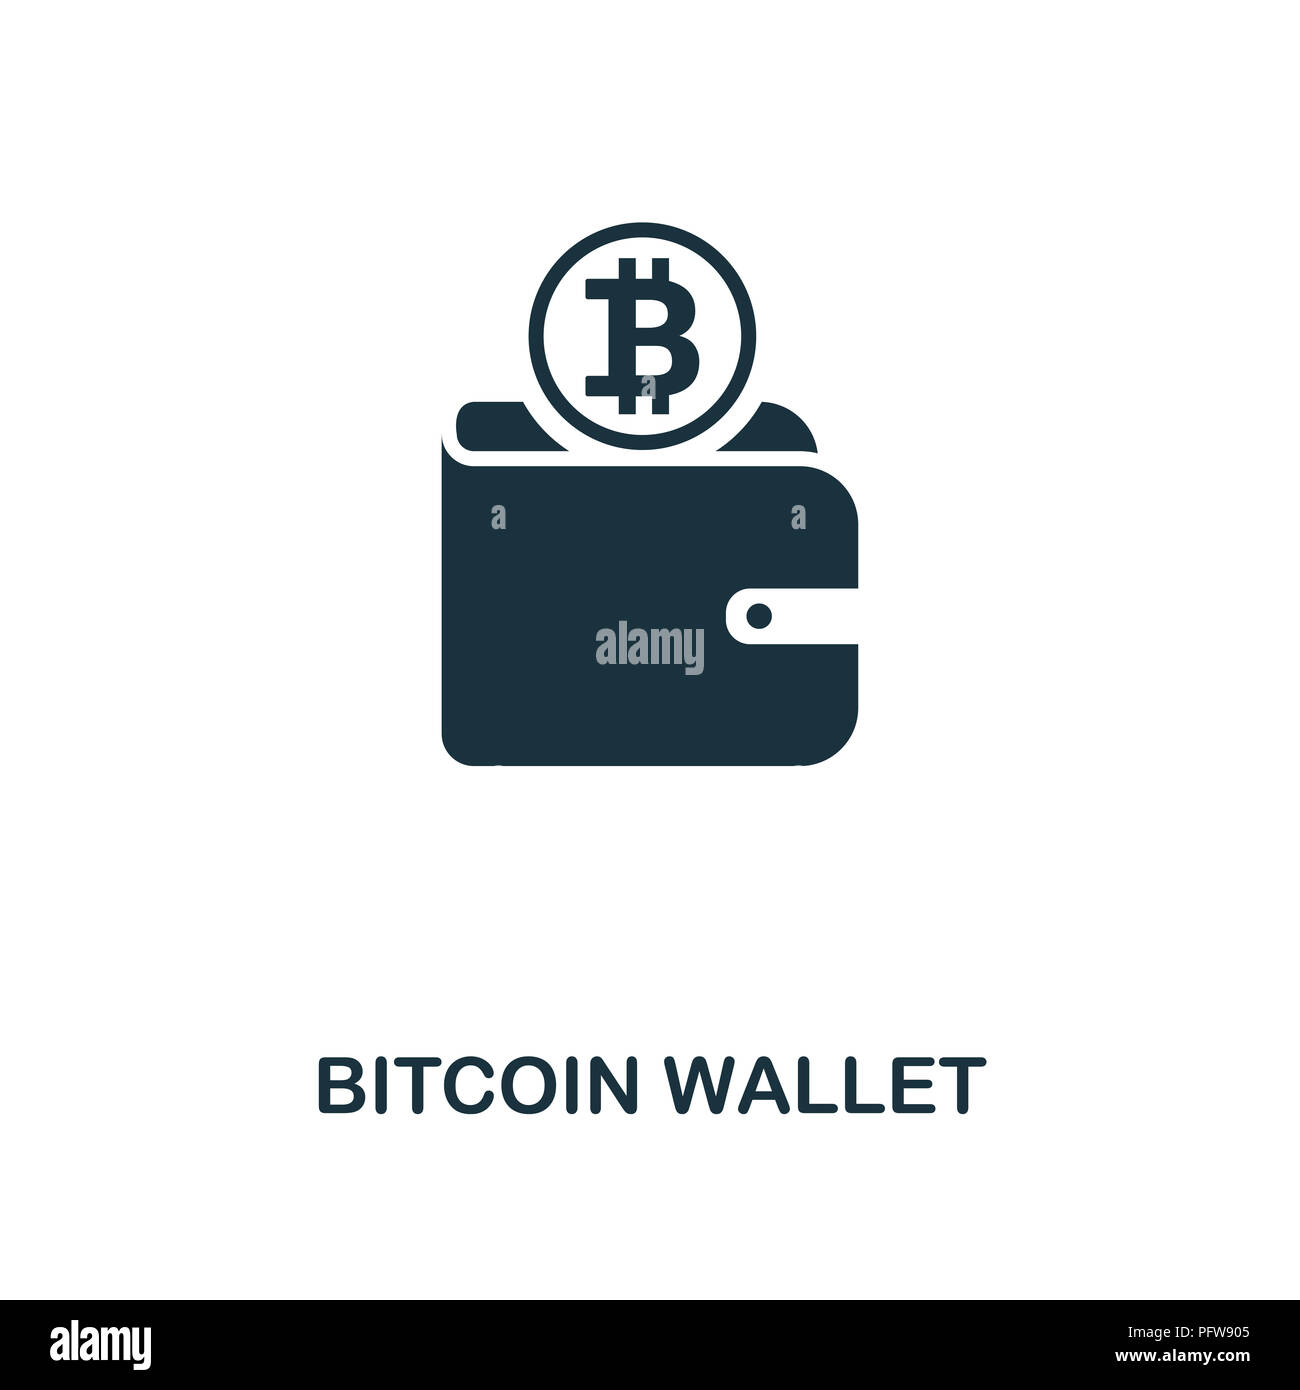 Bitcoin Wallet Icon Monochrome Style Design From Crypto Currency Collection UI Pixel Perfect Simple Pictogram Web Apps